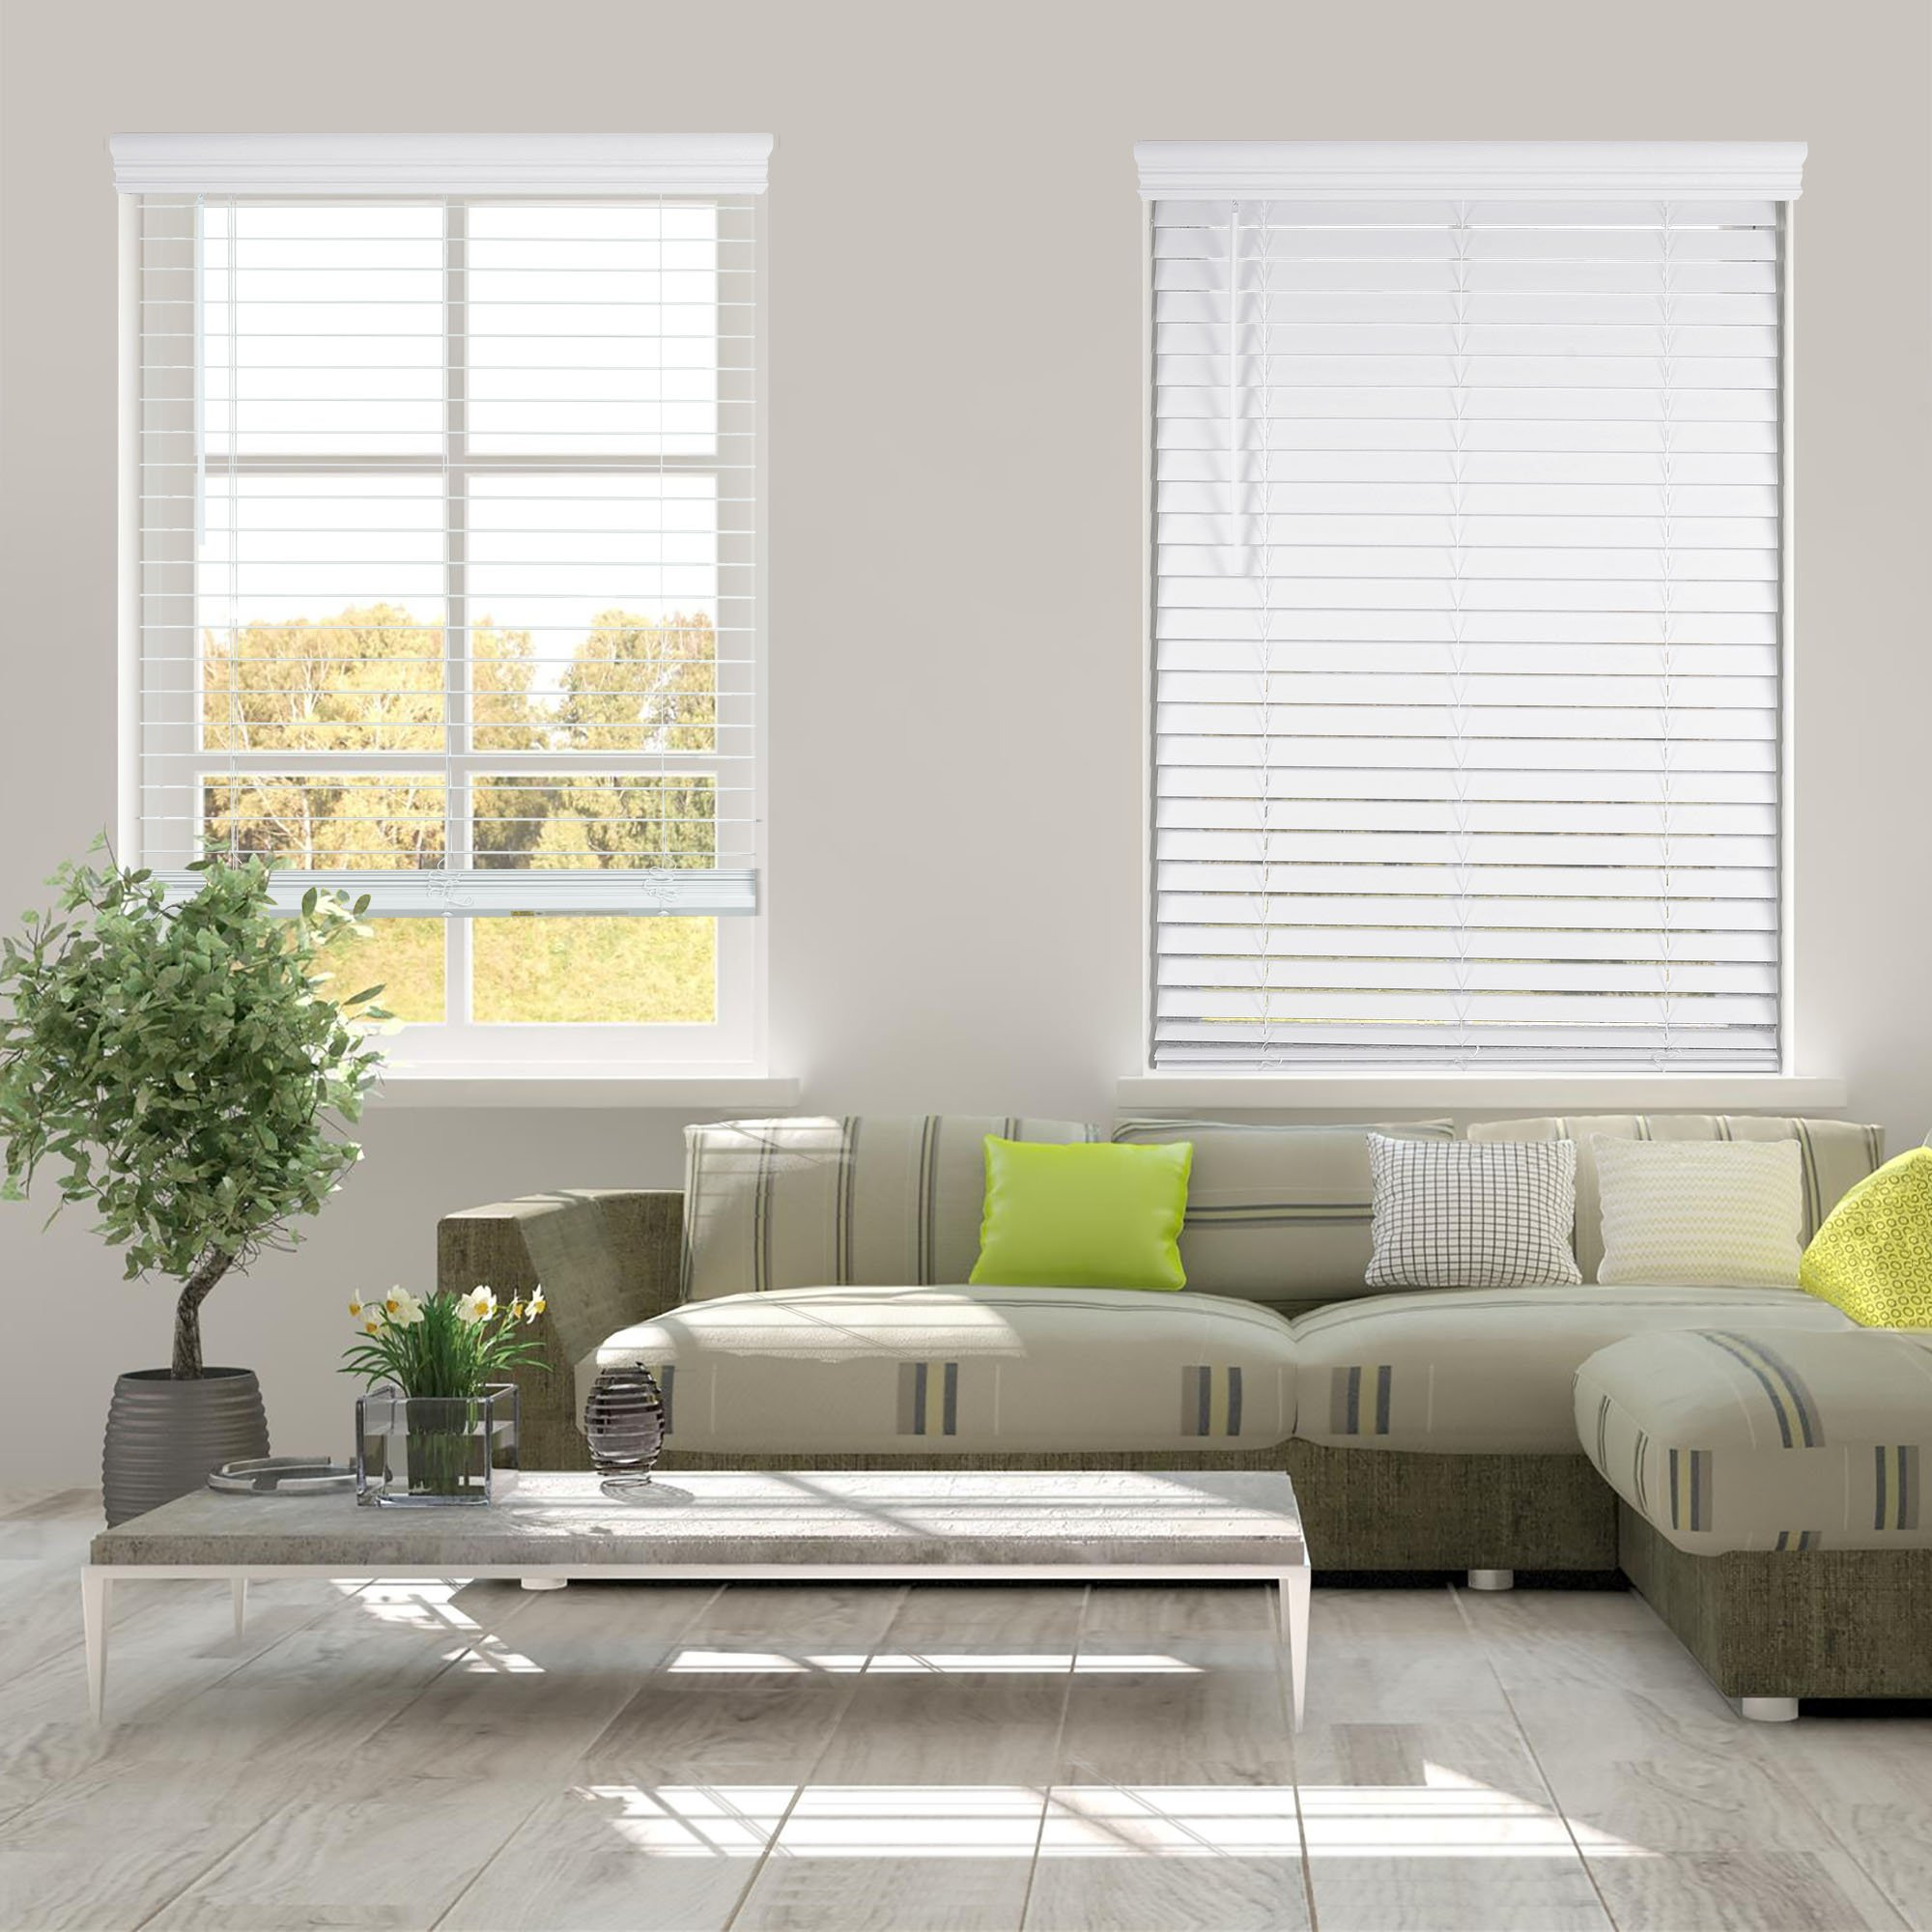 Arlo Blinds White Cordless 2 Inch Faux Wood Horizontal Blinds - Size: 34'' W x 60'' H, Cordless Lift and Wand Tilt